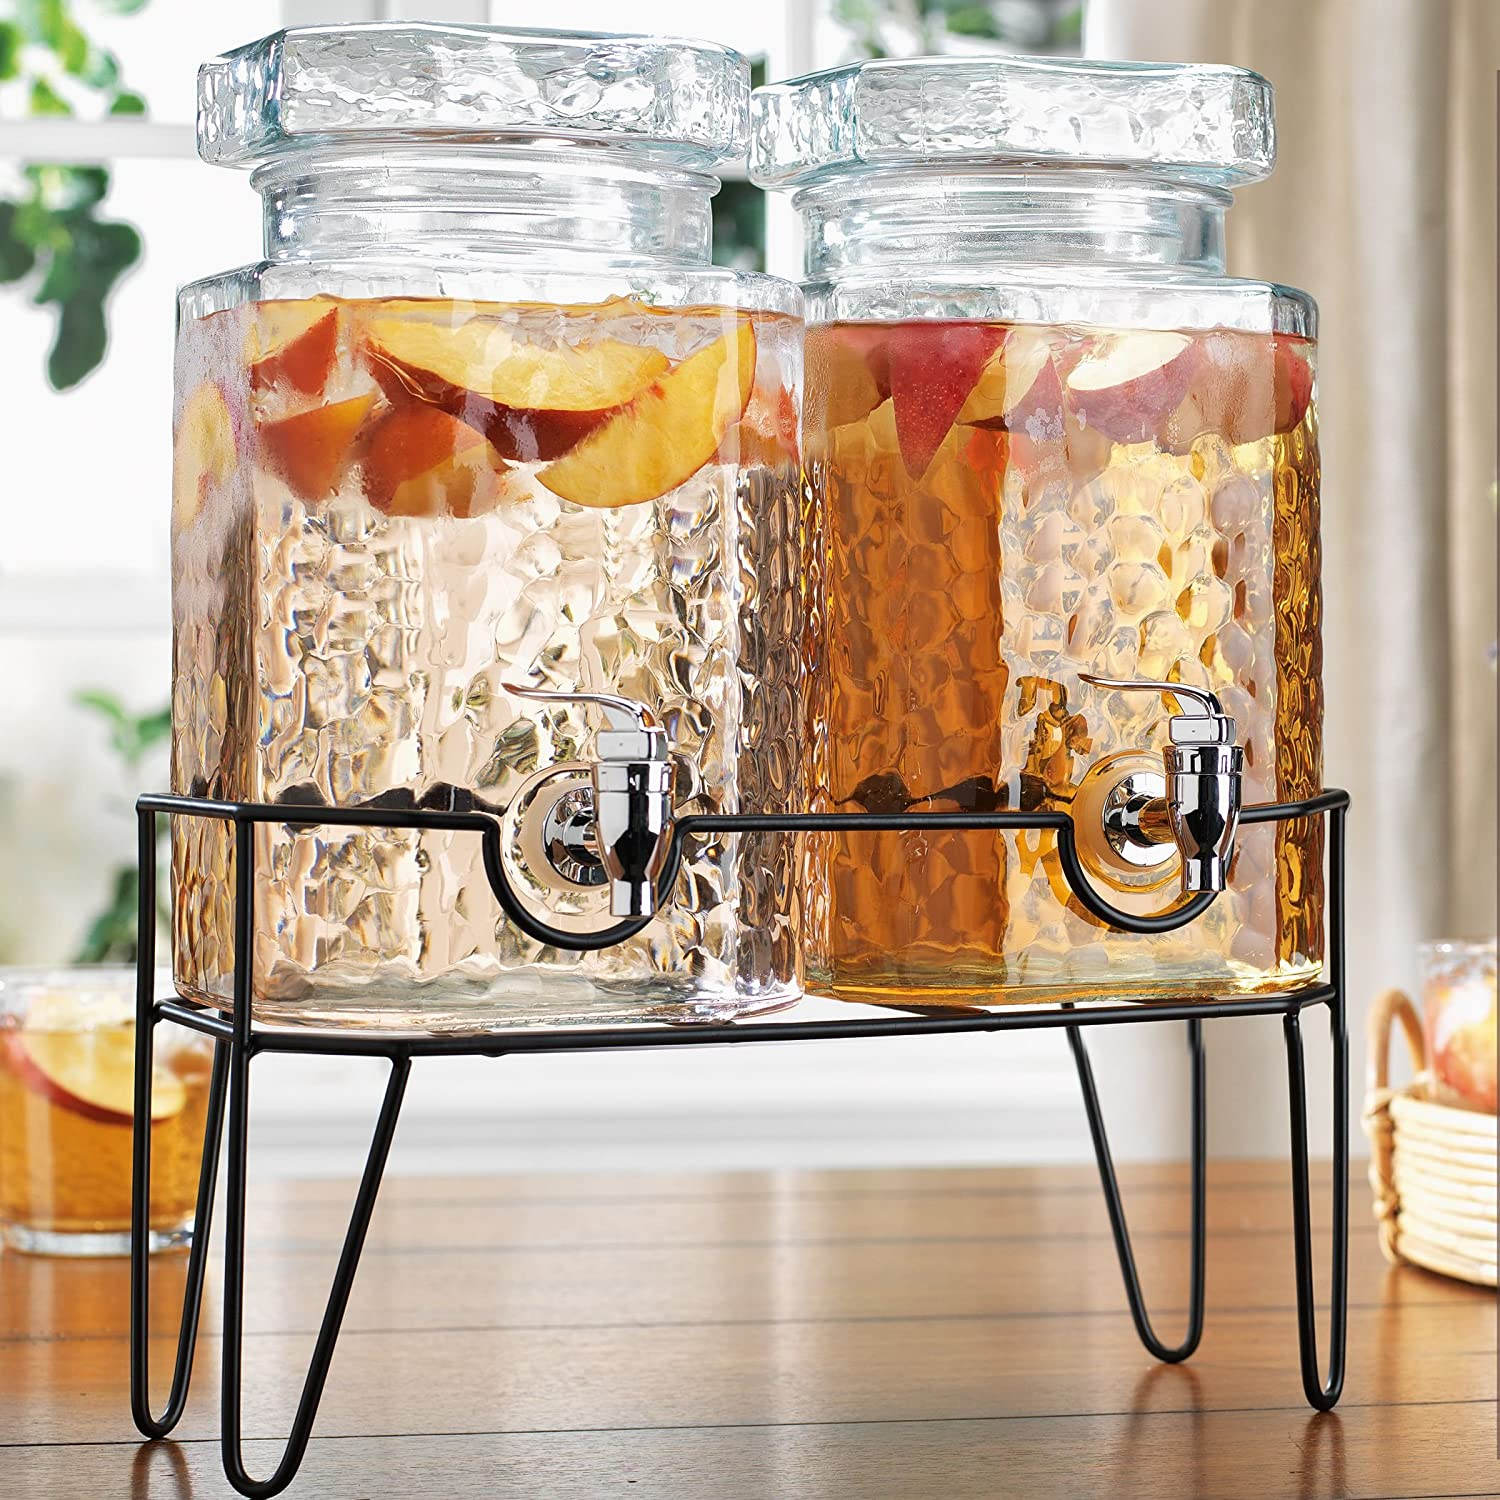 Home Ranking TOP5 Essentials Double 1 Gallon Dispenser R All items free shipping Beverage On Hammered